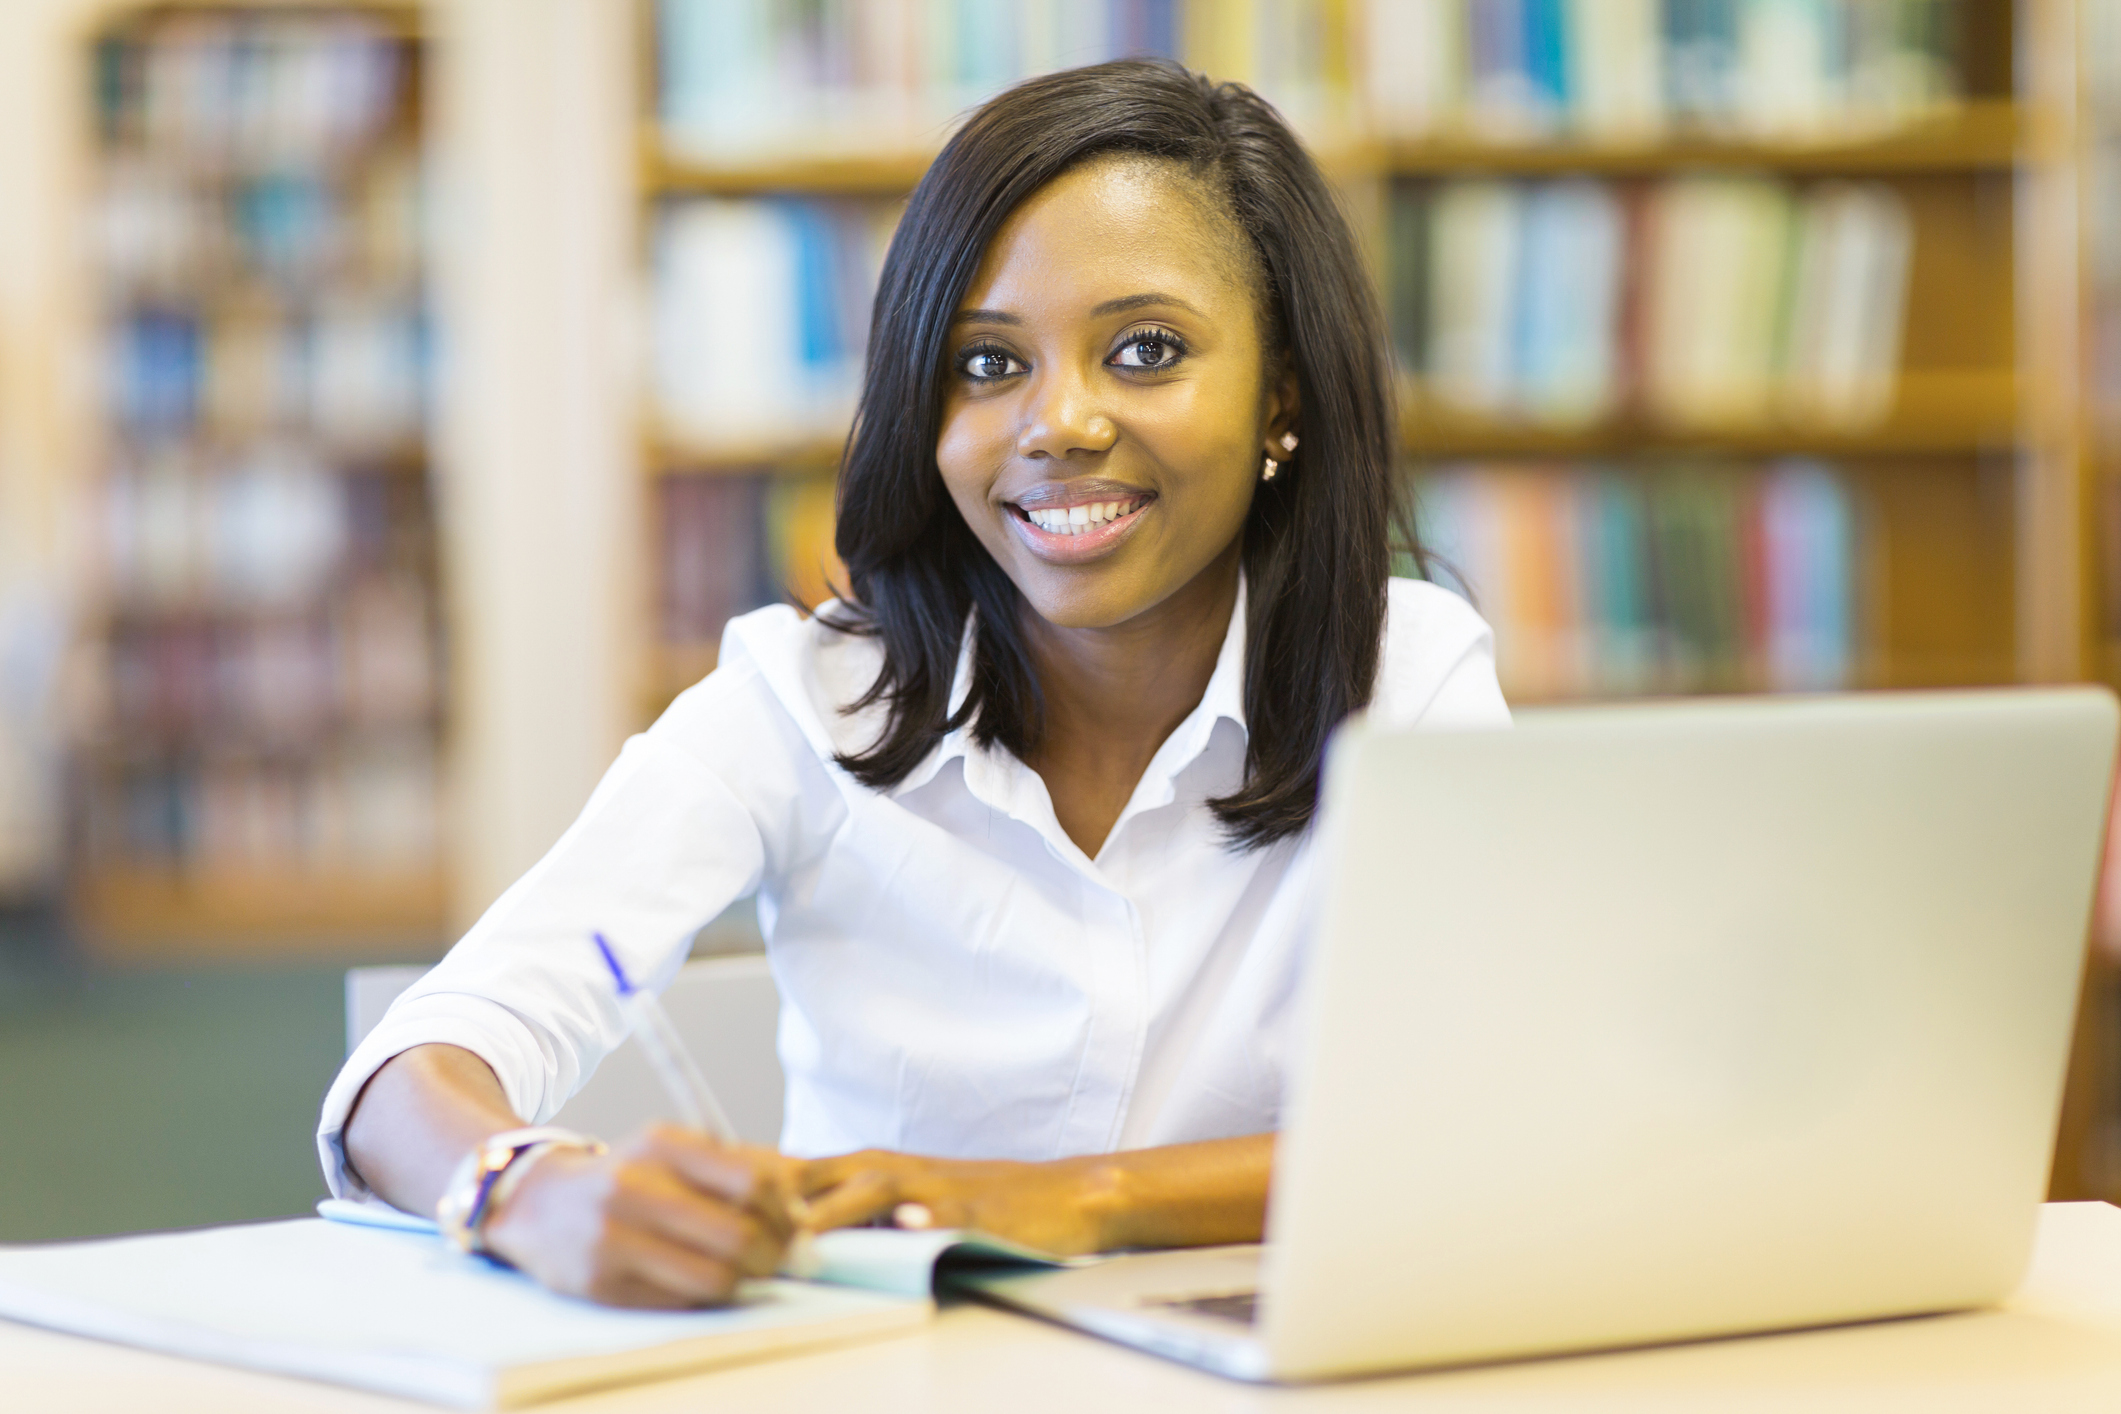 Smiling young woman in library at laptop writing in a notebook